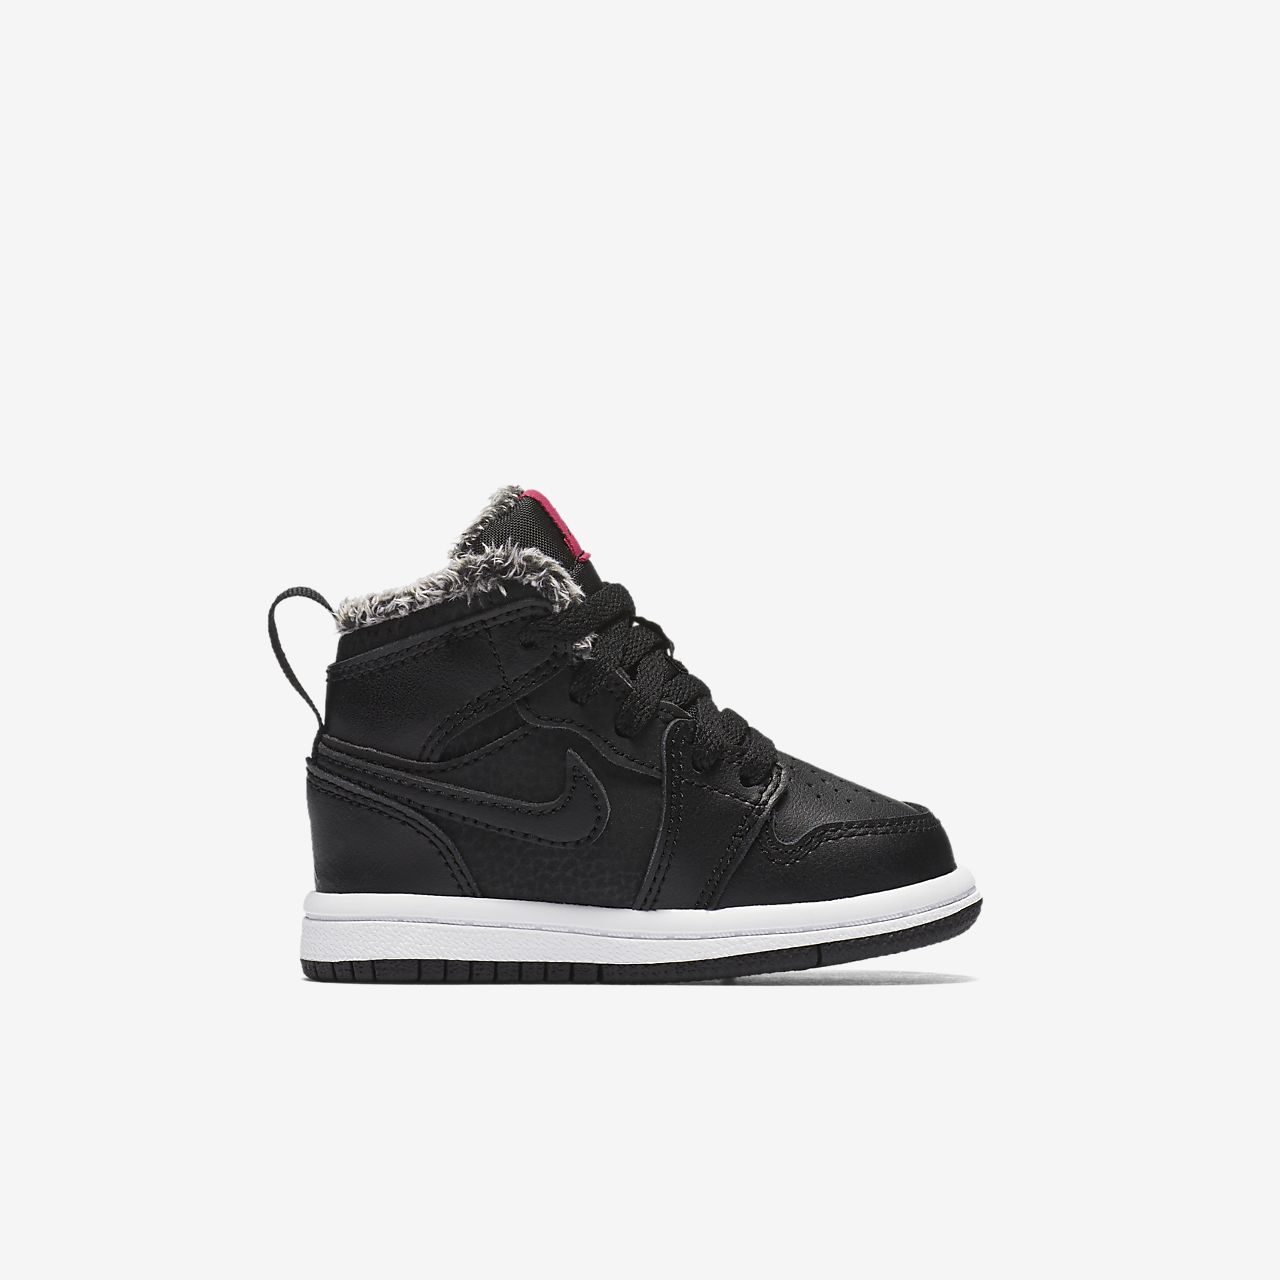 ... Air Jordan 1 Retro High Infant/Toddler Shoe